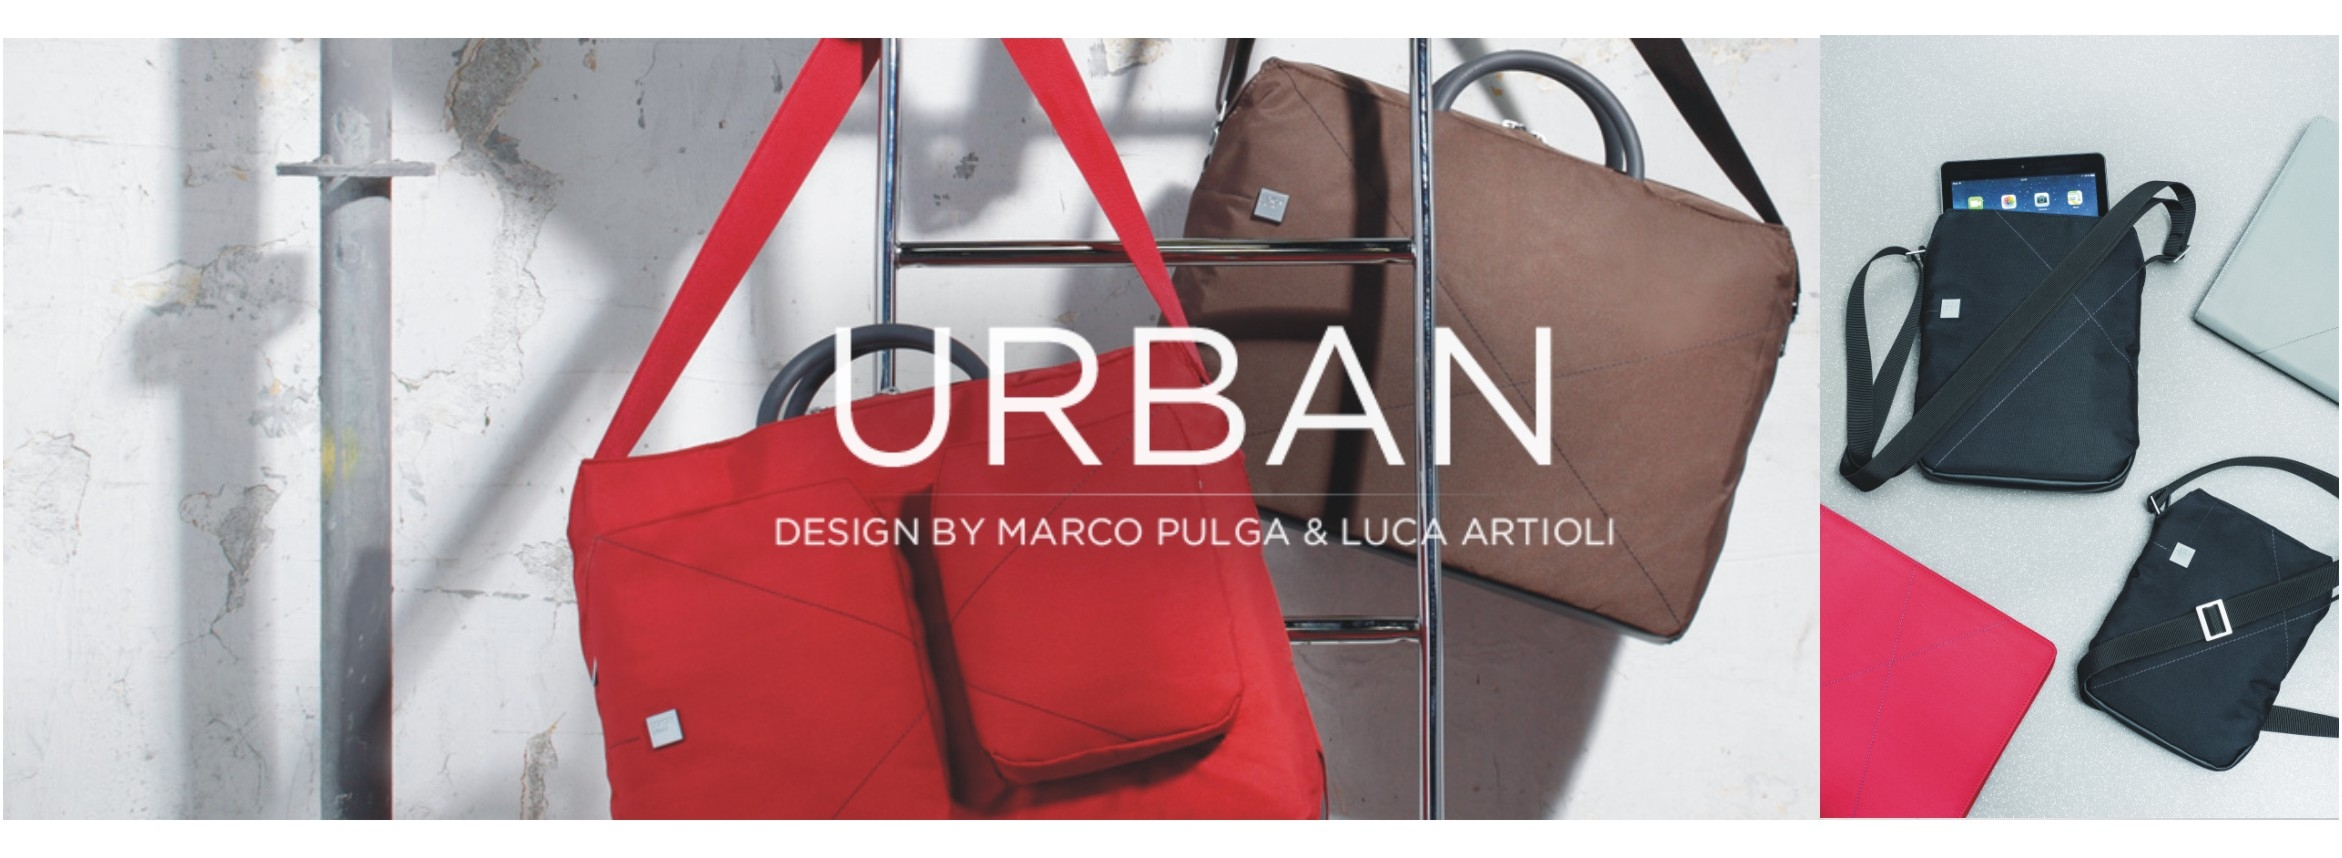 Urban by LEXON